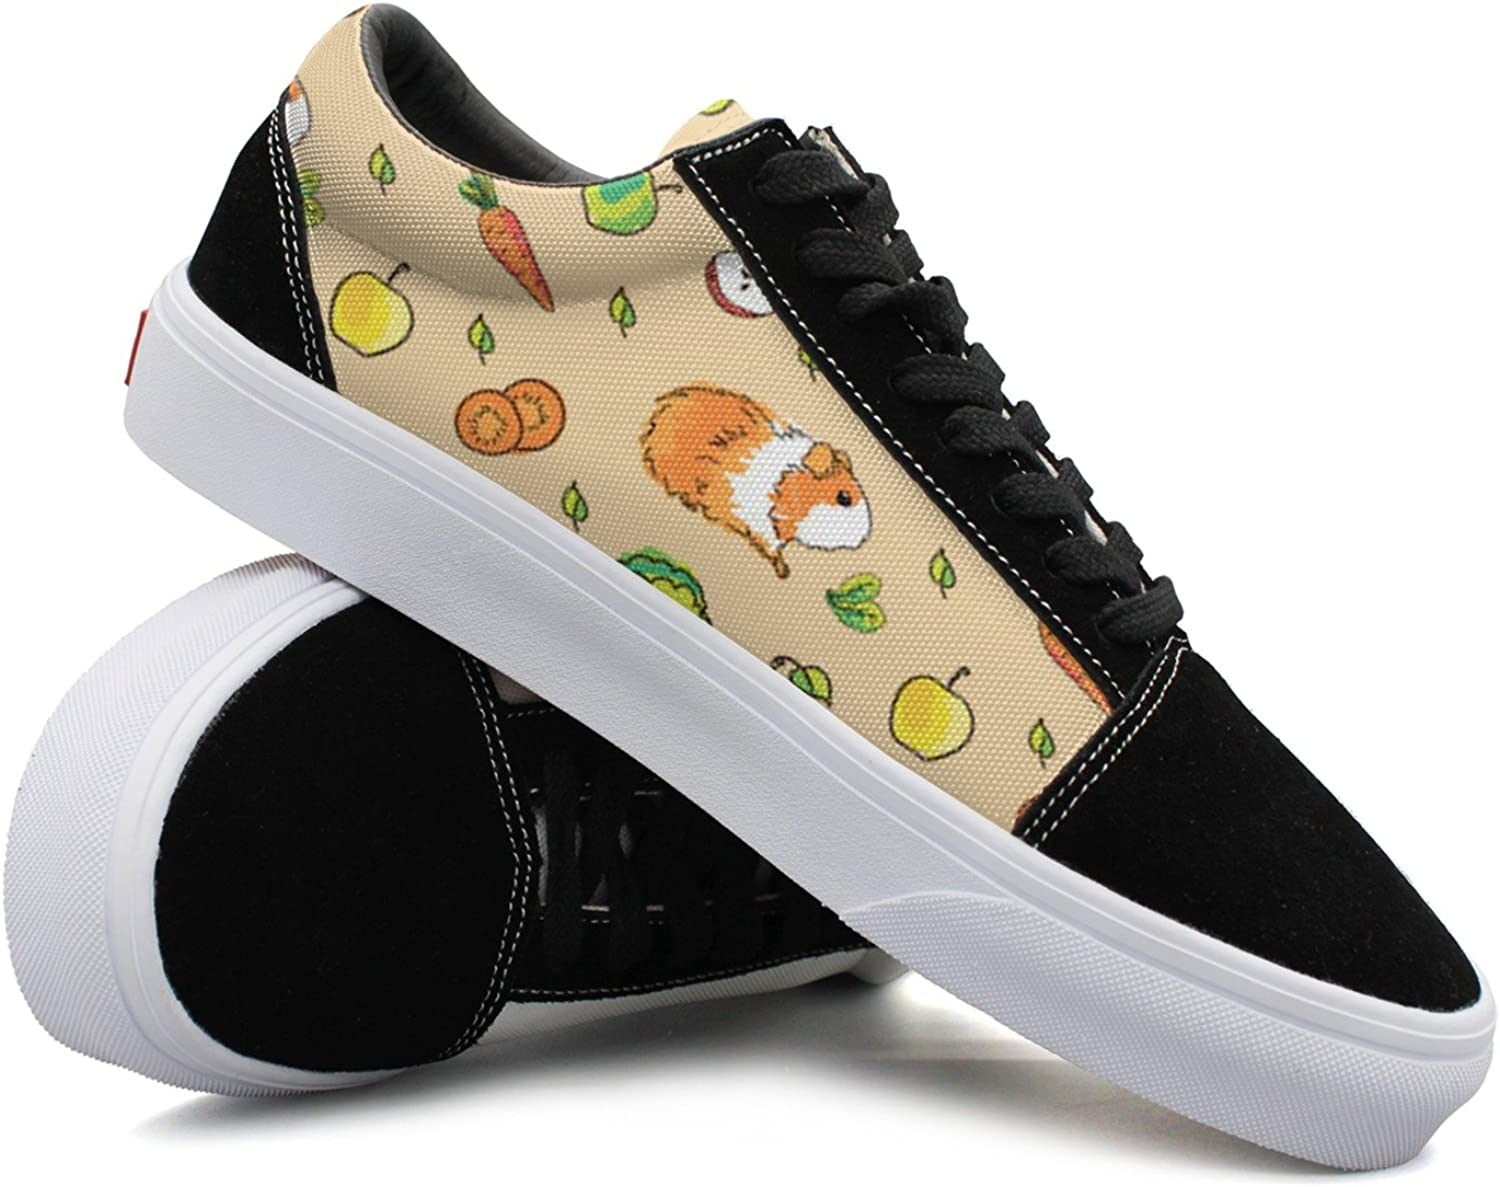 Guinea Pigs Background With Pets And Food Women Casual shoes Sneakers Footwear Lo-Top Cute Simple